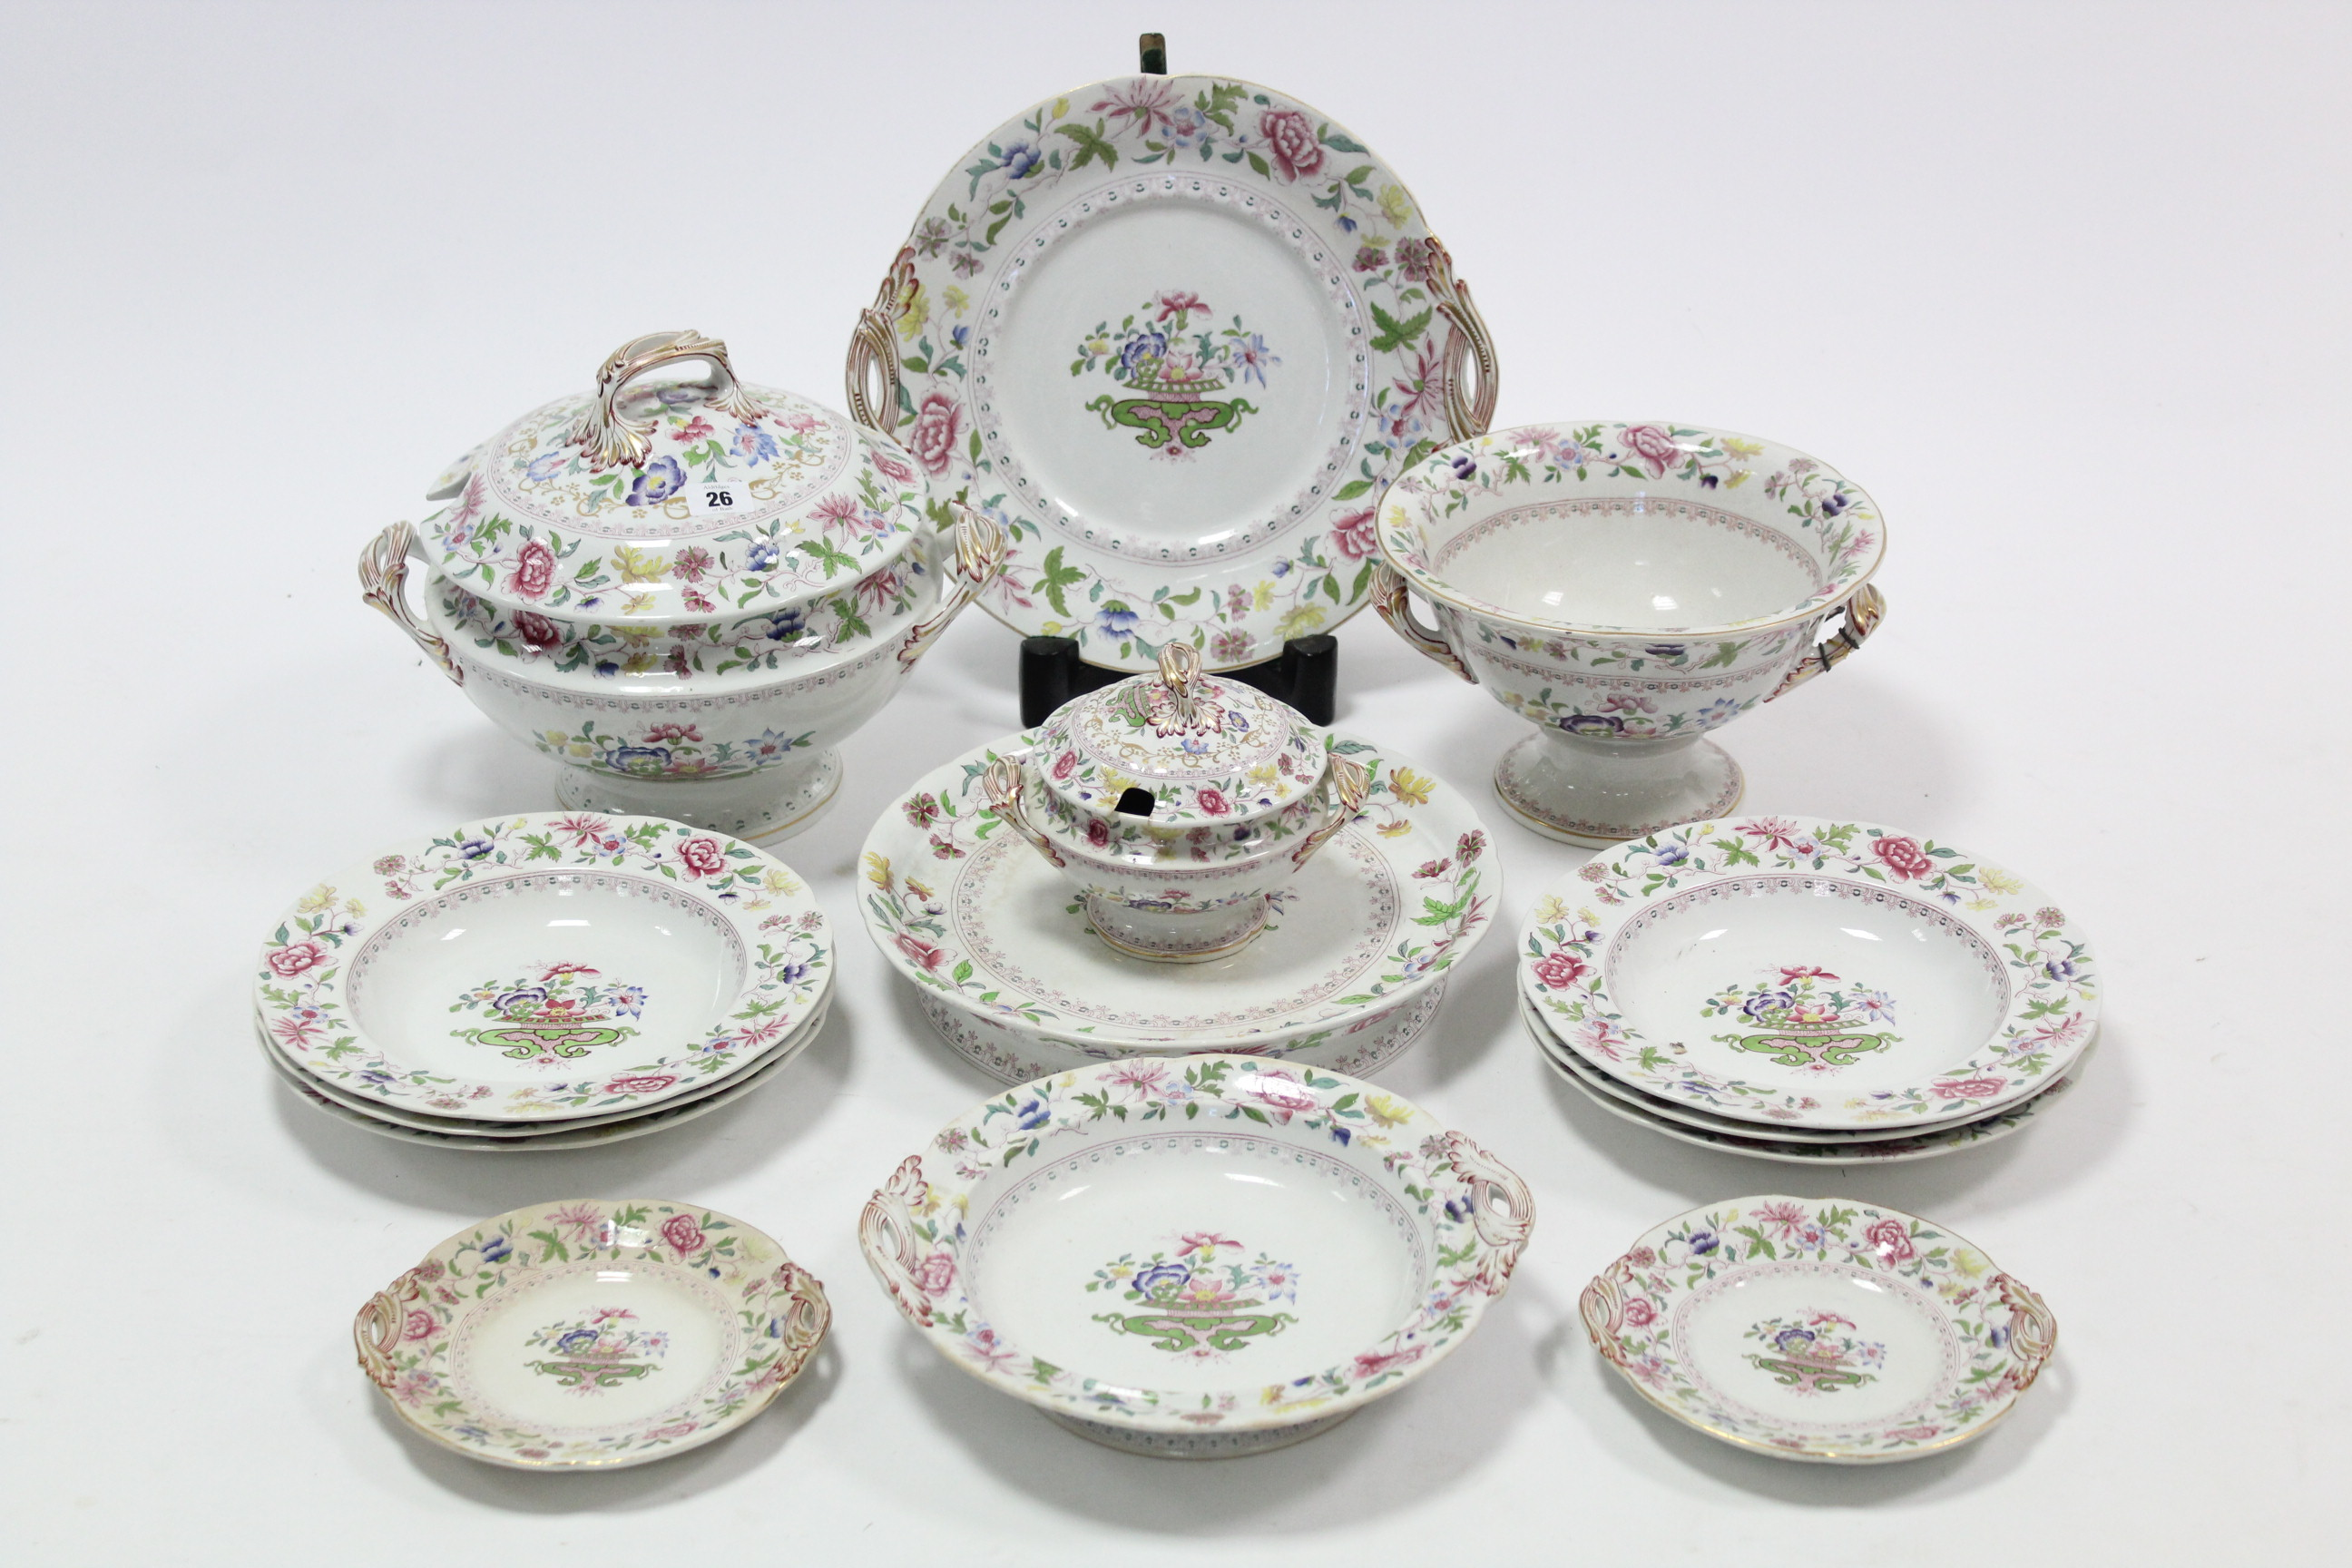 Lot 26 - A Victorian china floral decorated thirteen-piece part dinner service including a circular tureen,